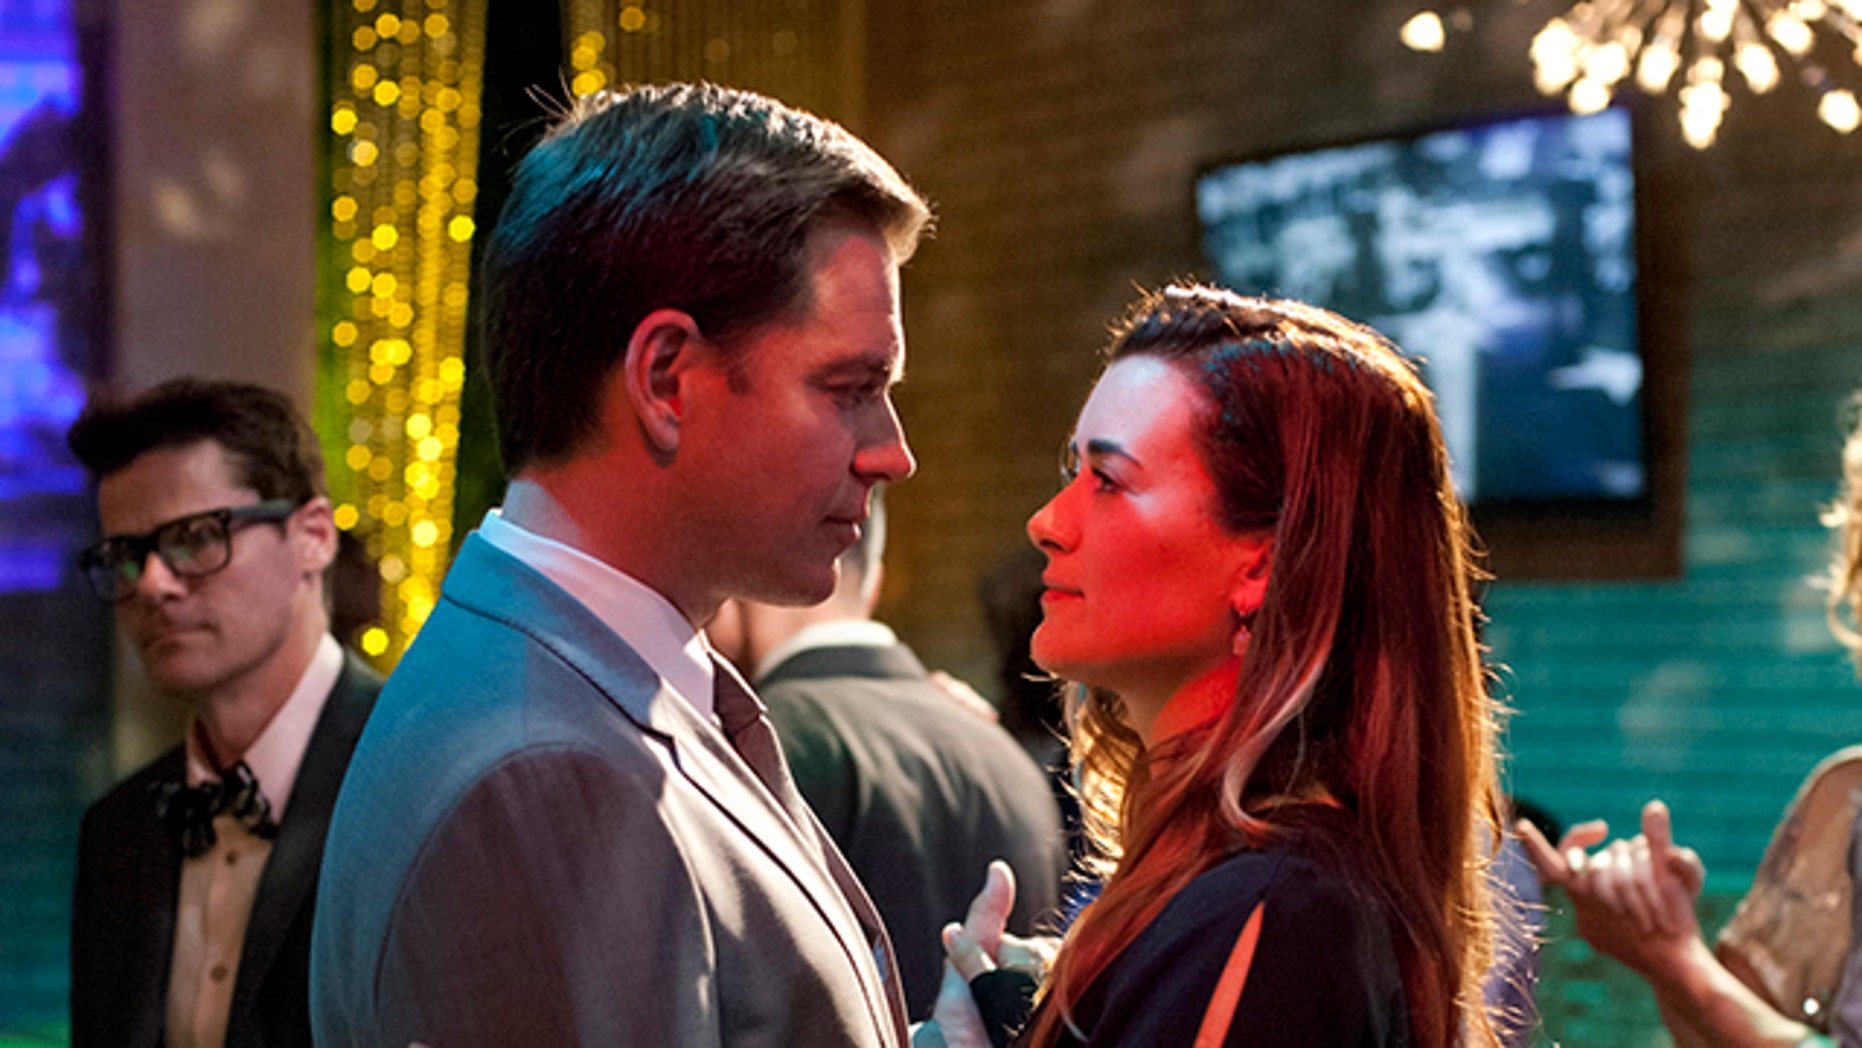 """""""Berlin"""" -- While the NCIS team investigates the murder of a Mossad officer in Virginia, Tony (Michael Weatherly) and Ziva (Cote de Pablo) depart for Berlin as they track her fatherâÃÂÃÂs killer, on NCIS, Tuesday, April 23 (8:00-9:00 PM, ET/PT) on the CBS Television Network. Photo: Richard Foreman/CBS ÃÂé2013 CBS Broadcasting, Inc. All Rights Reserved."""